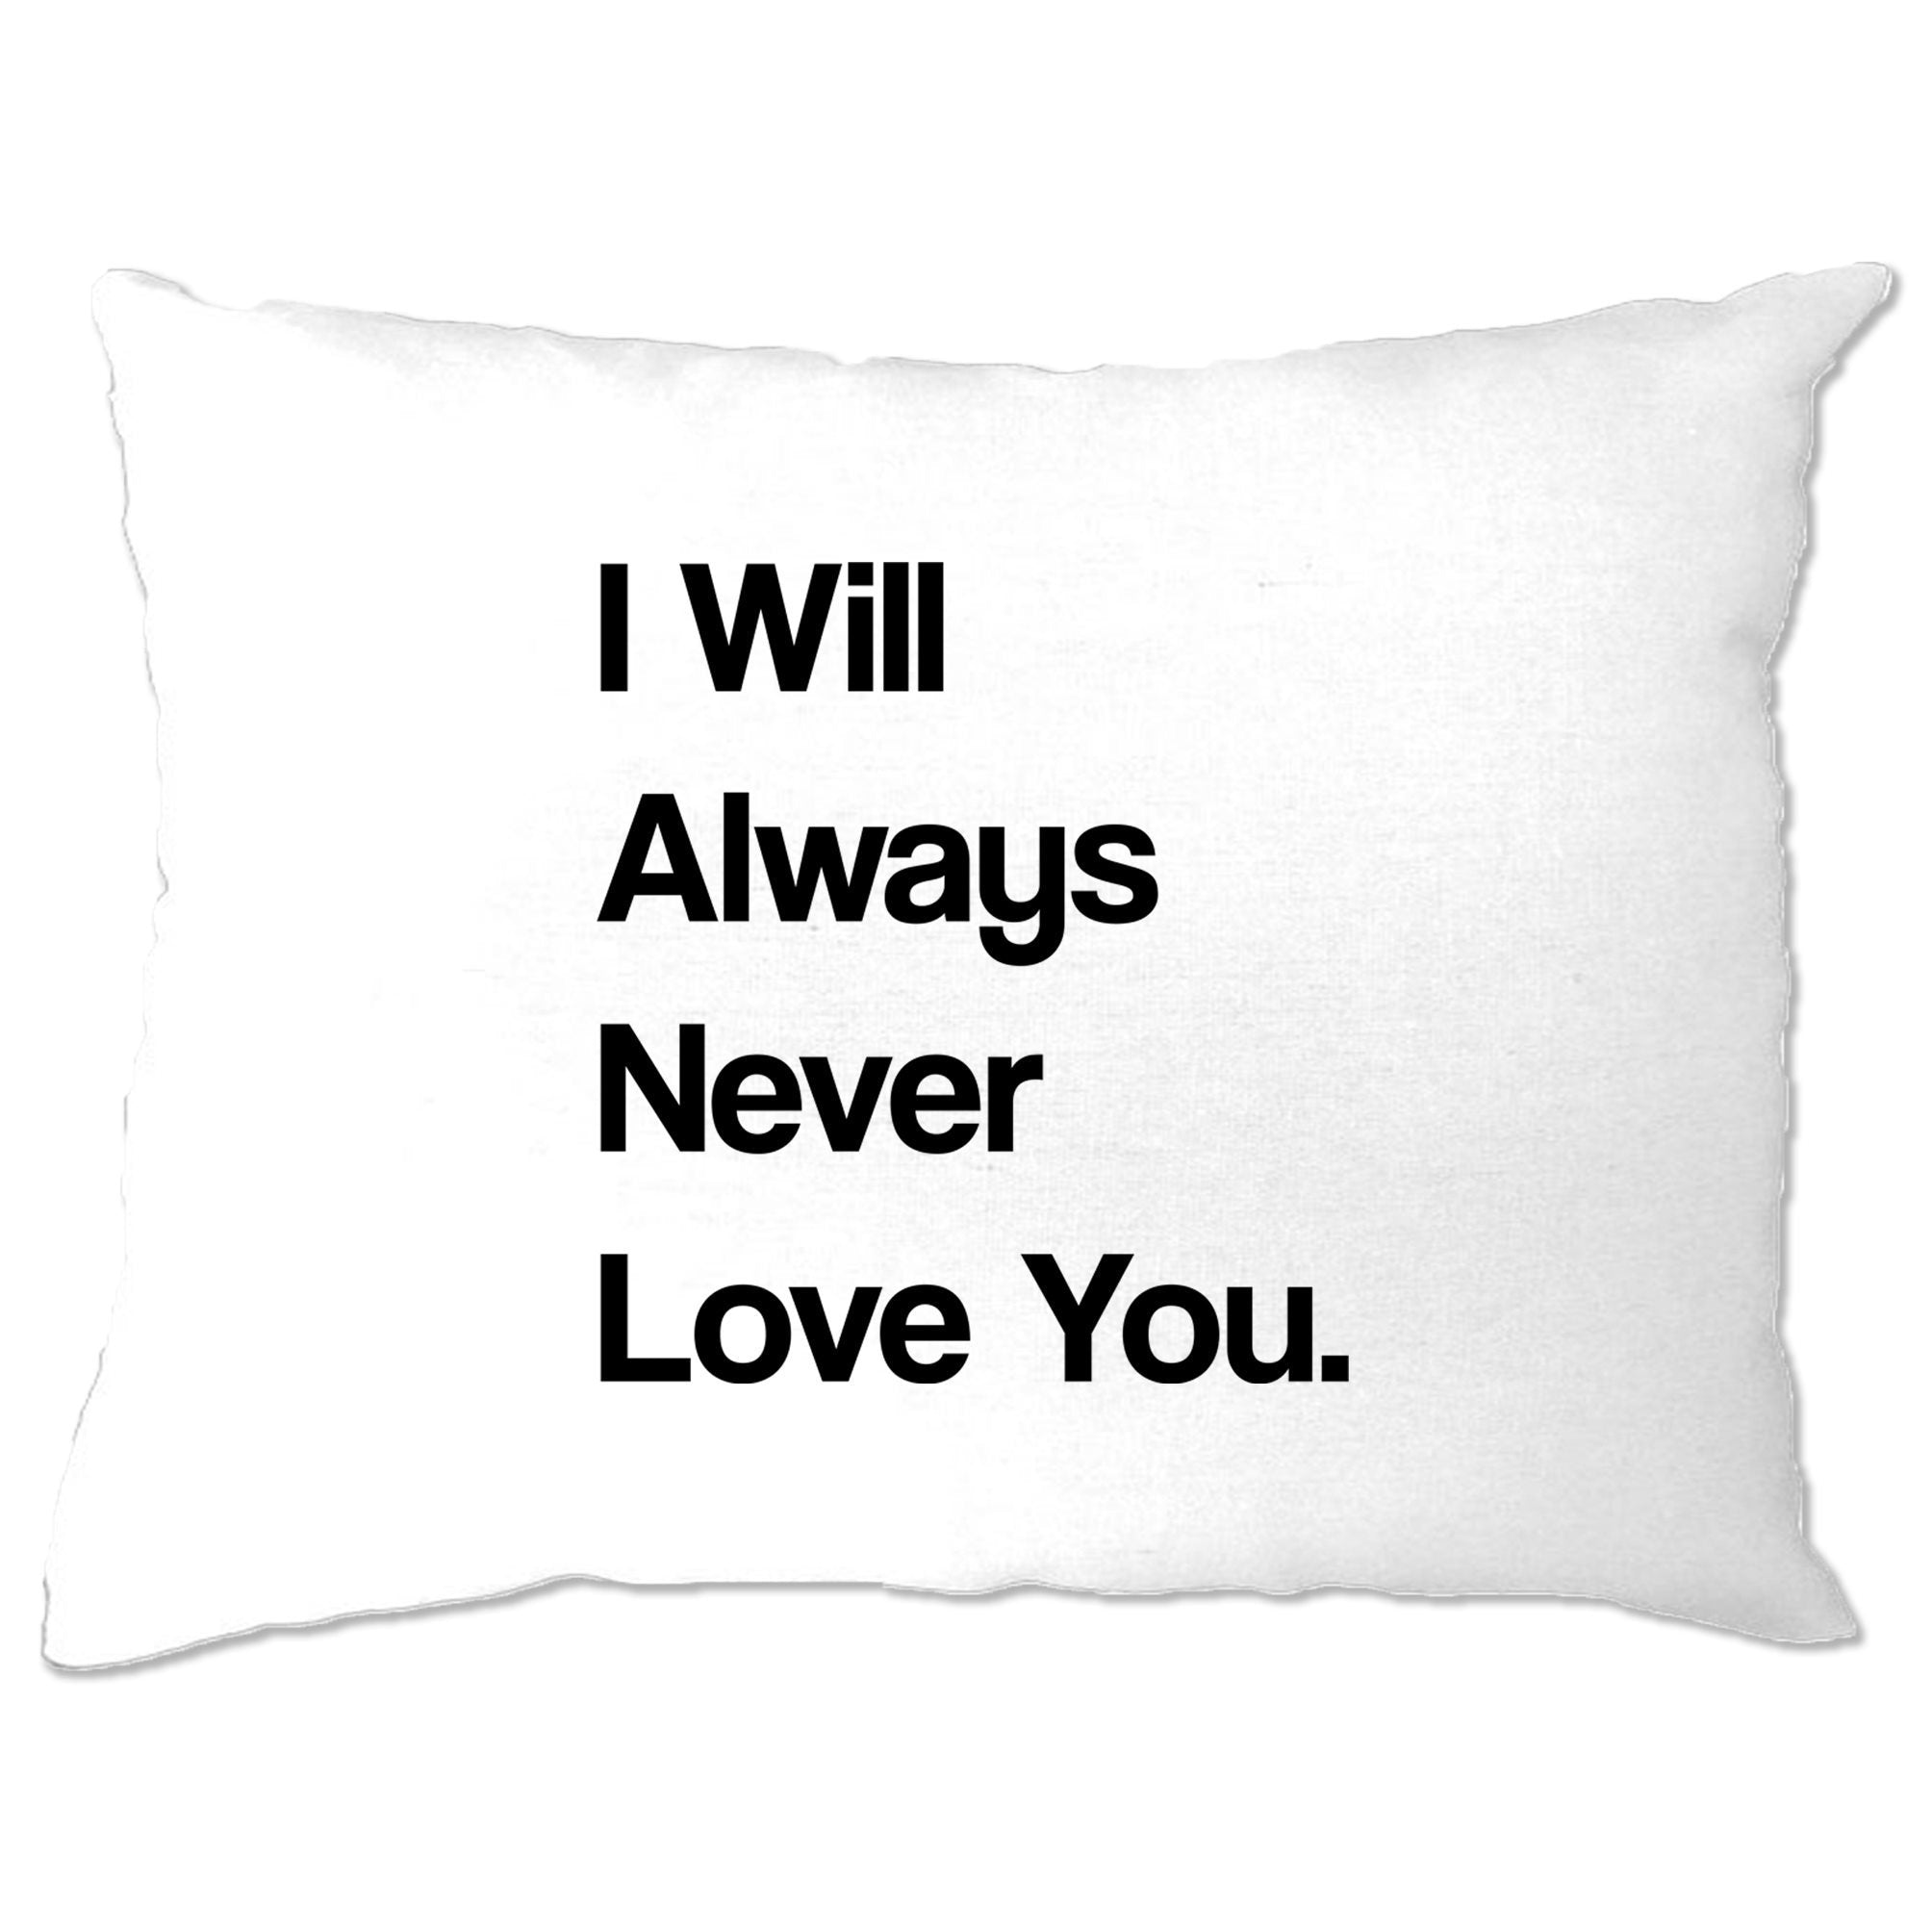 Novelty Pillow Case I Will Always Never Love You